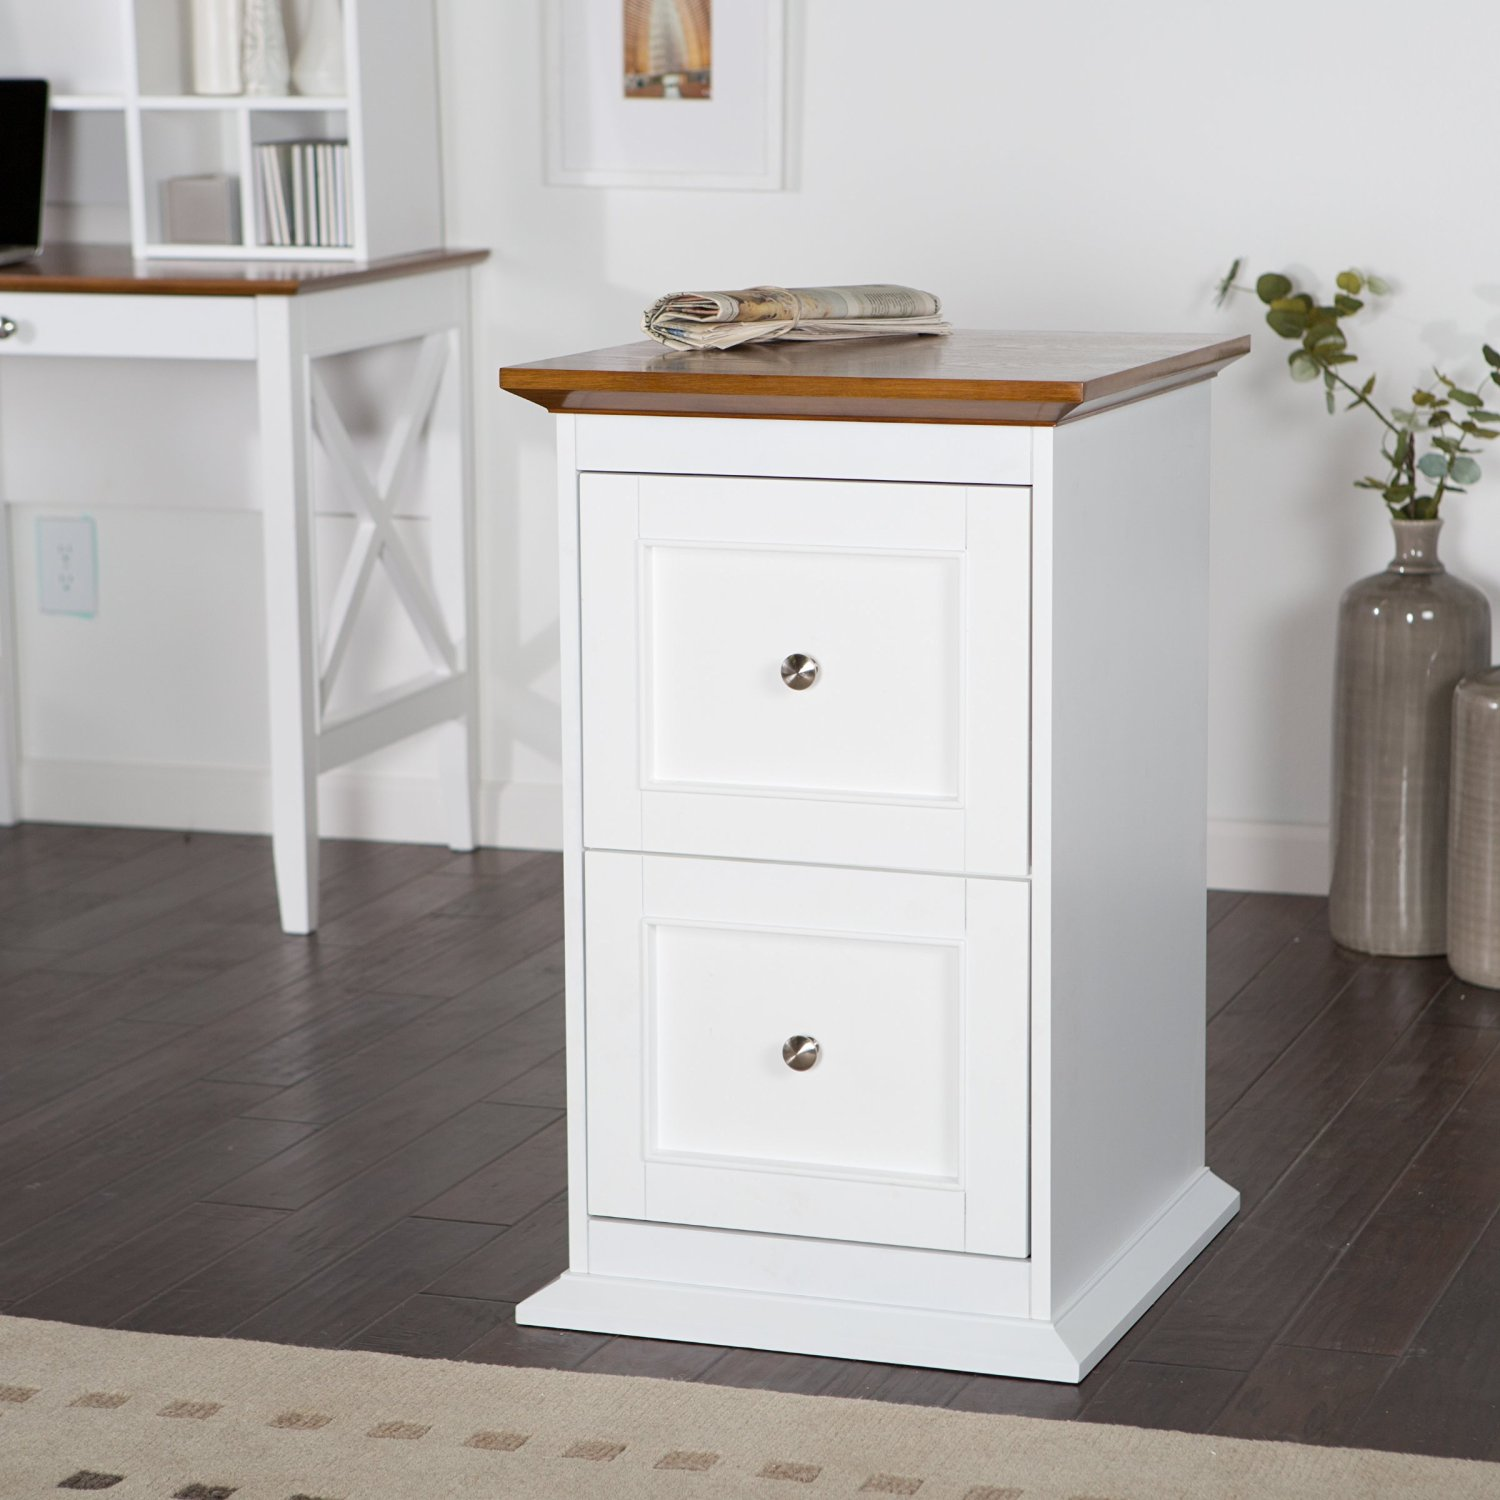 Get Quotations · Wood File Cabinet / Storage Cabinet 2 Drawer   White/Oak.  19 L